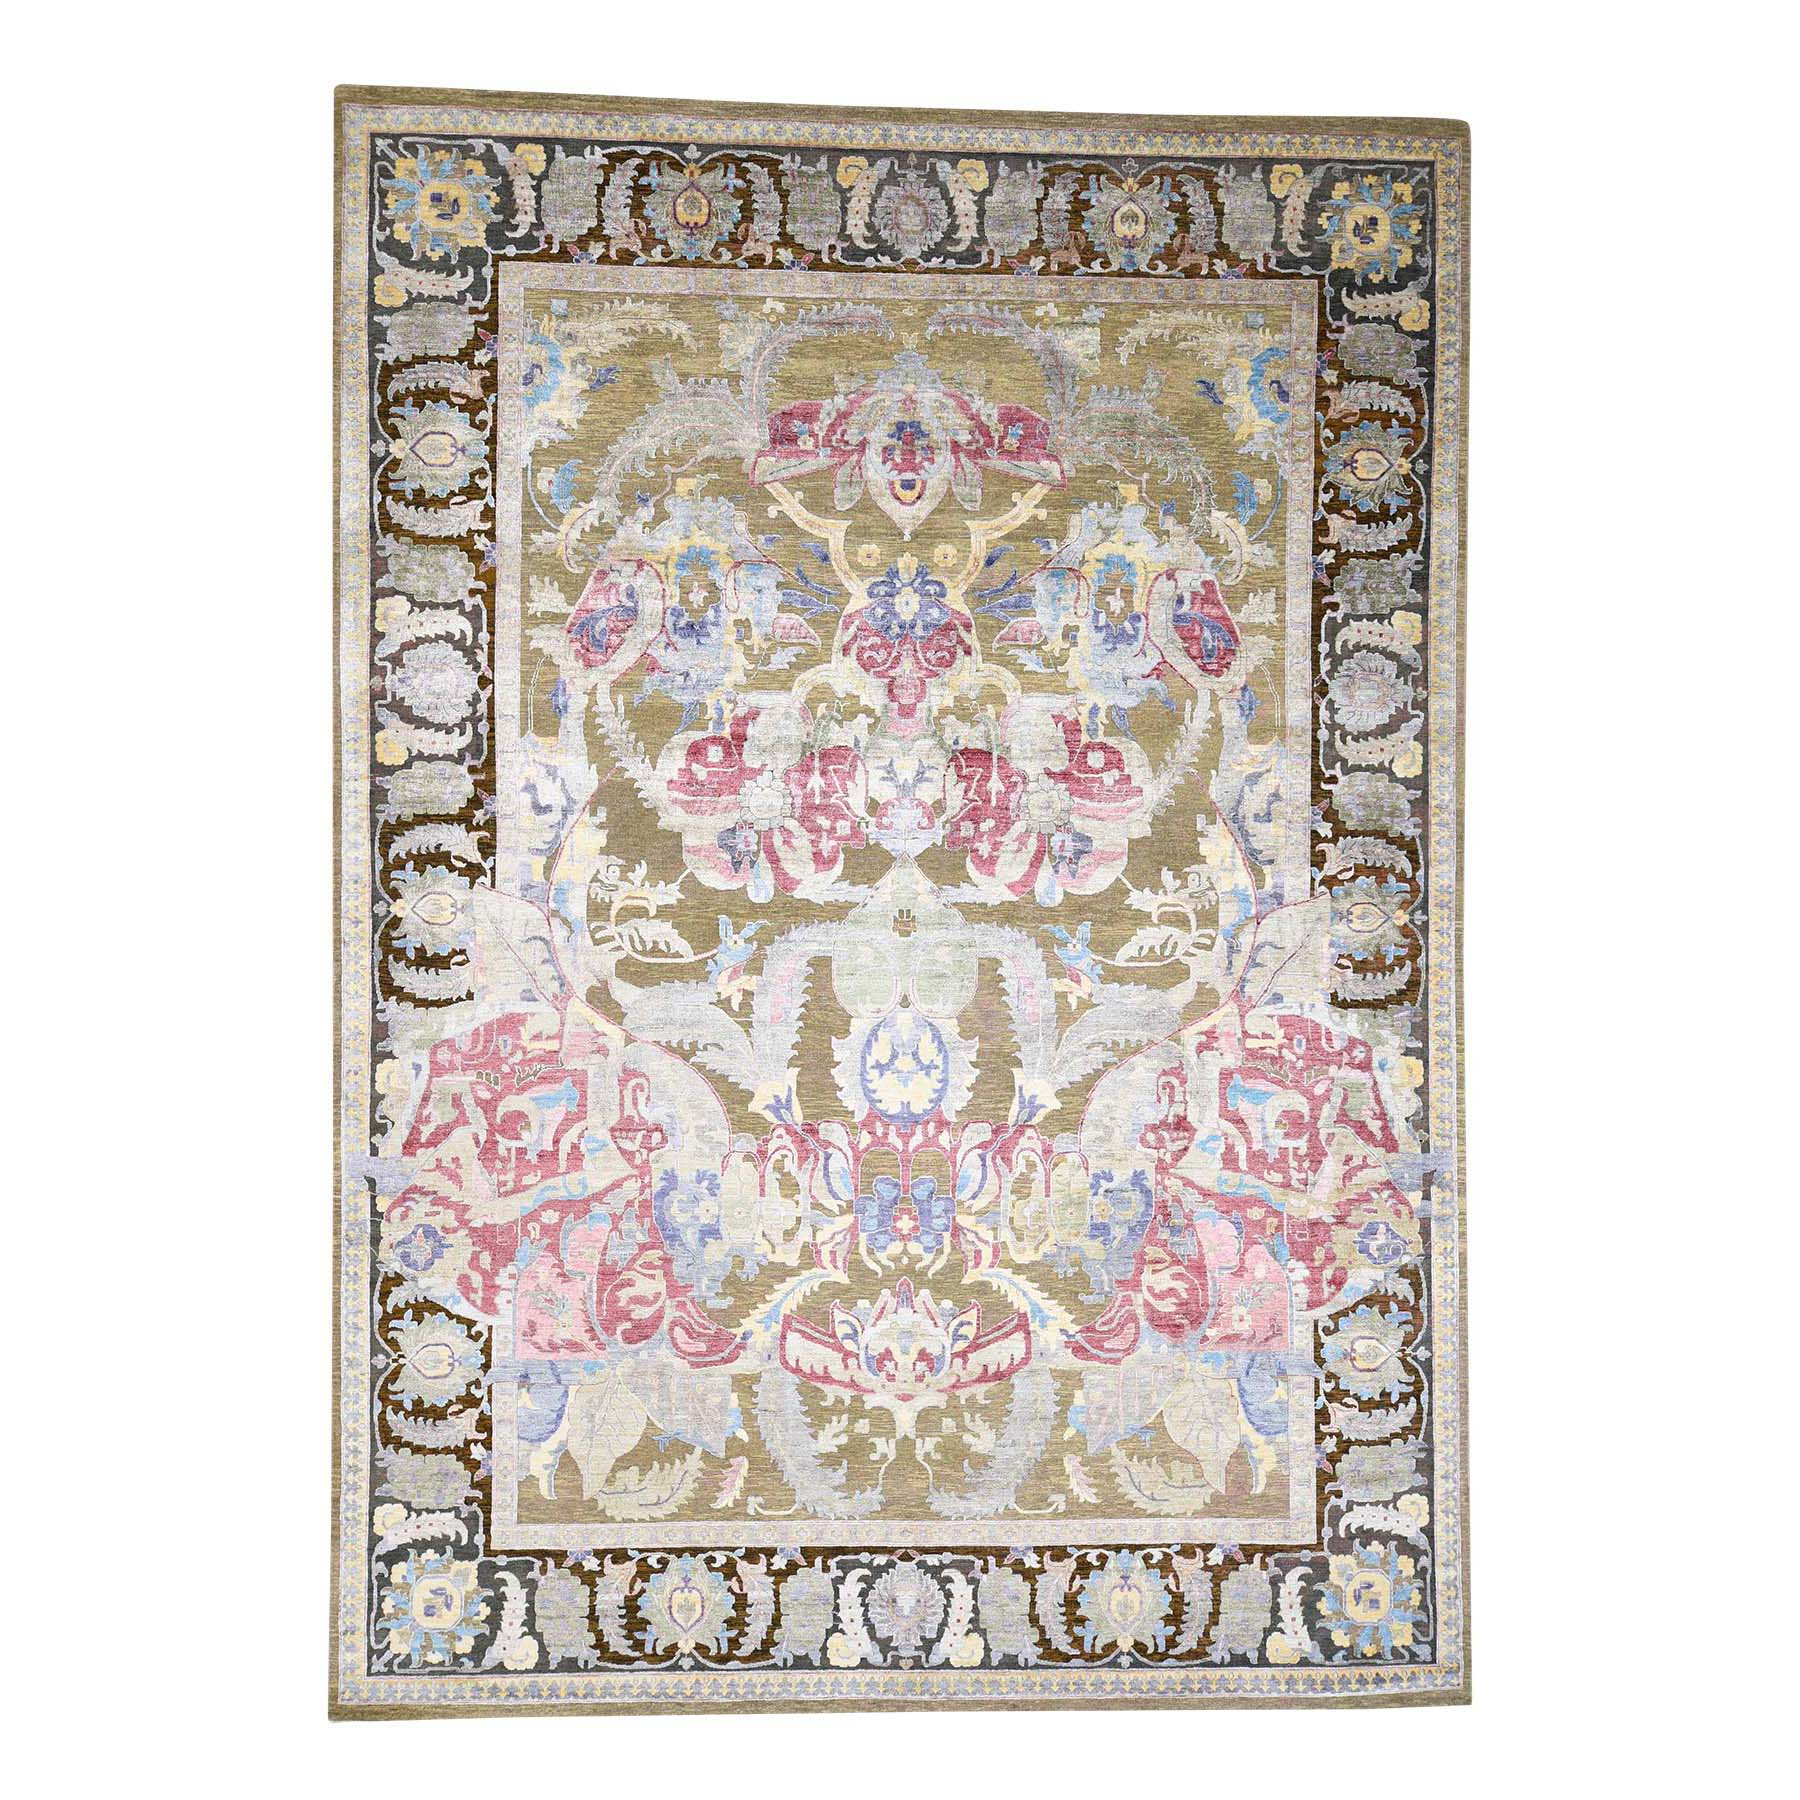 arts and crafts rugs LUV350820